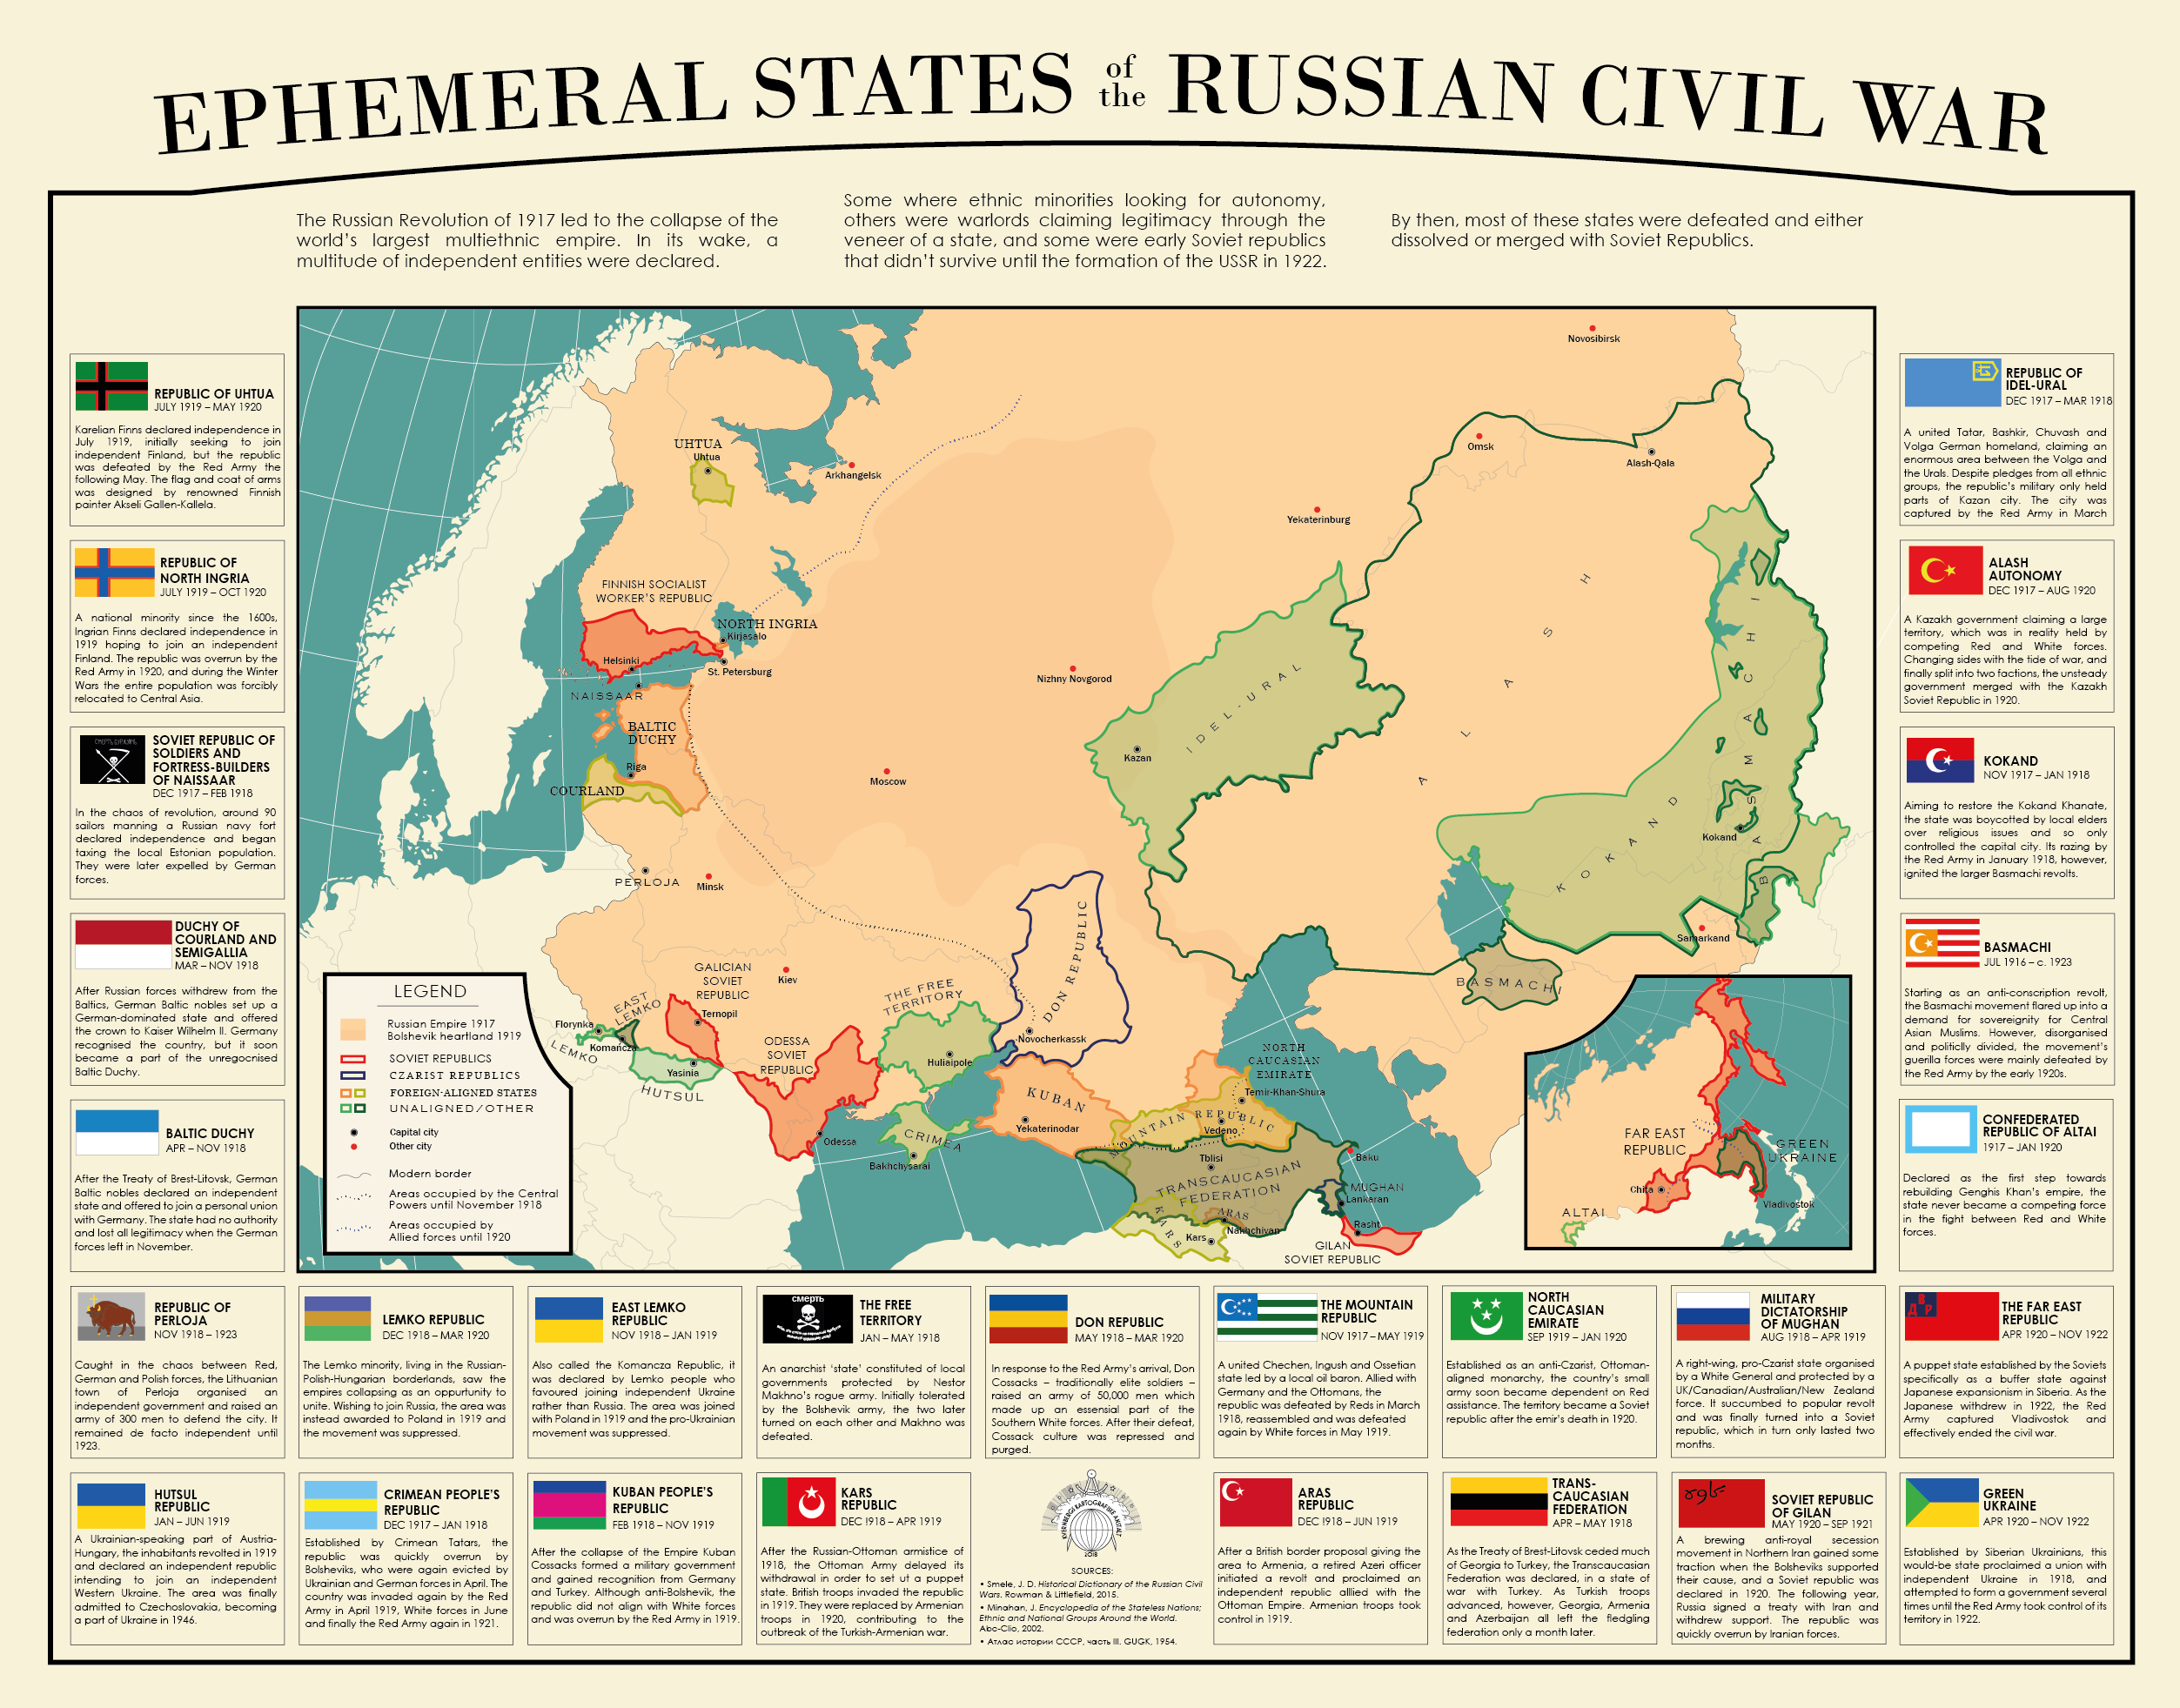 Ephemeral states of the Russian civil war | History | Map, Asia map on markovo russia map, bashkiria russia map, yaroslavl russia map, vladivostok map, grozny russia map, ufa russia map, novgorod russia map, yurga russia map, moscow map, elista russia map, warsaw russia map, crimea russia map, tatarstan russia map, irkutsk map, tula russia map, samara russia map, serpukhov russia map, astrakhan russia map, tynda russia map, volsk russia map,